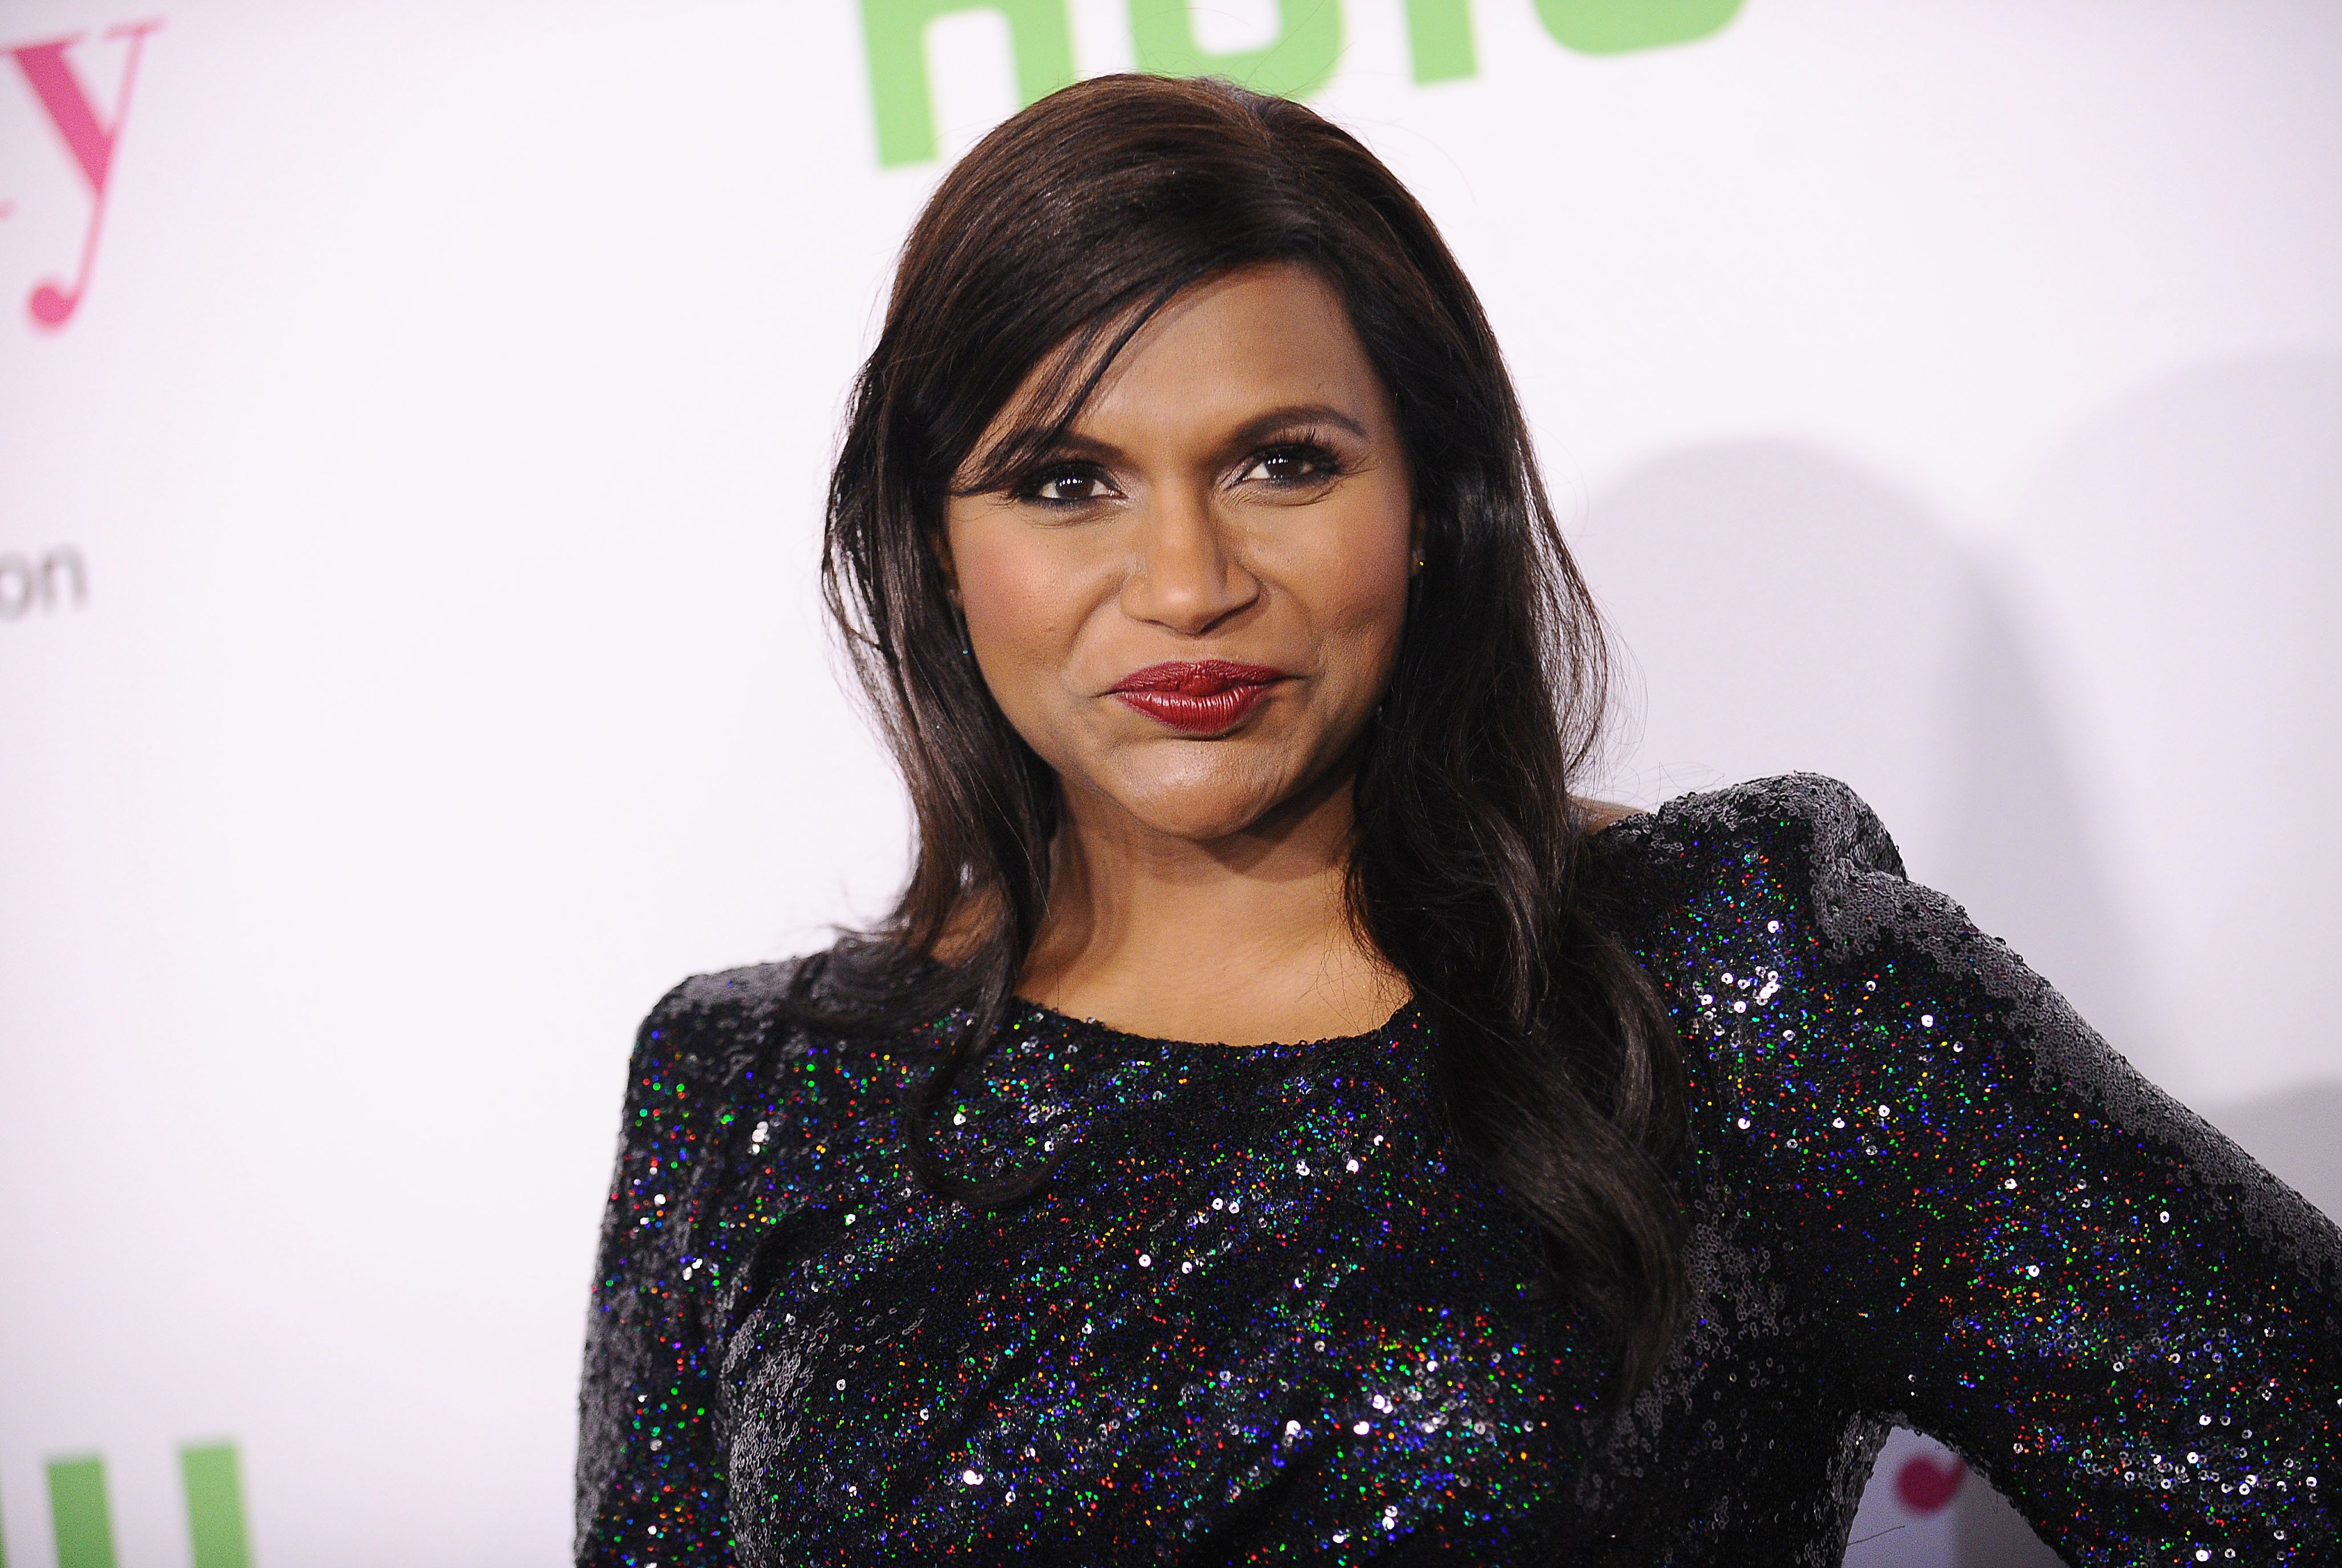 WEST HOLLYWOOD, CA - SEPTEMBER 12:  Actress Mindy Kaling attends 'The Mindy Project' final season premiere party at The London West Hollywood on September 12, 2017 in West Hollywood, California.  (Photo by Jason LaVeris/FilmMagic)